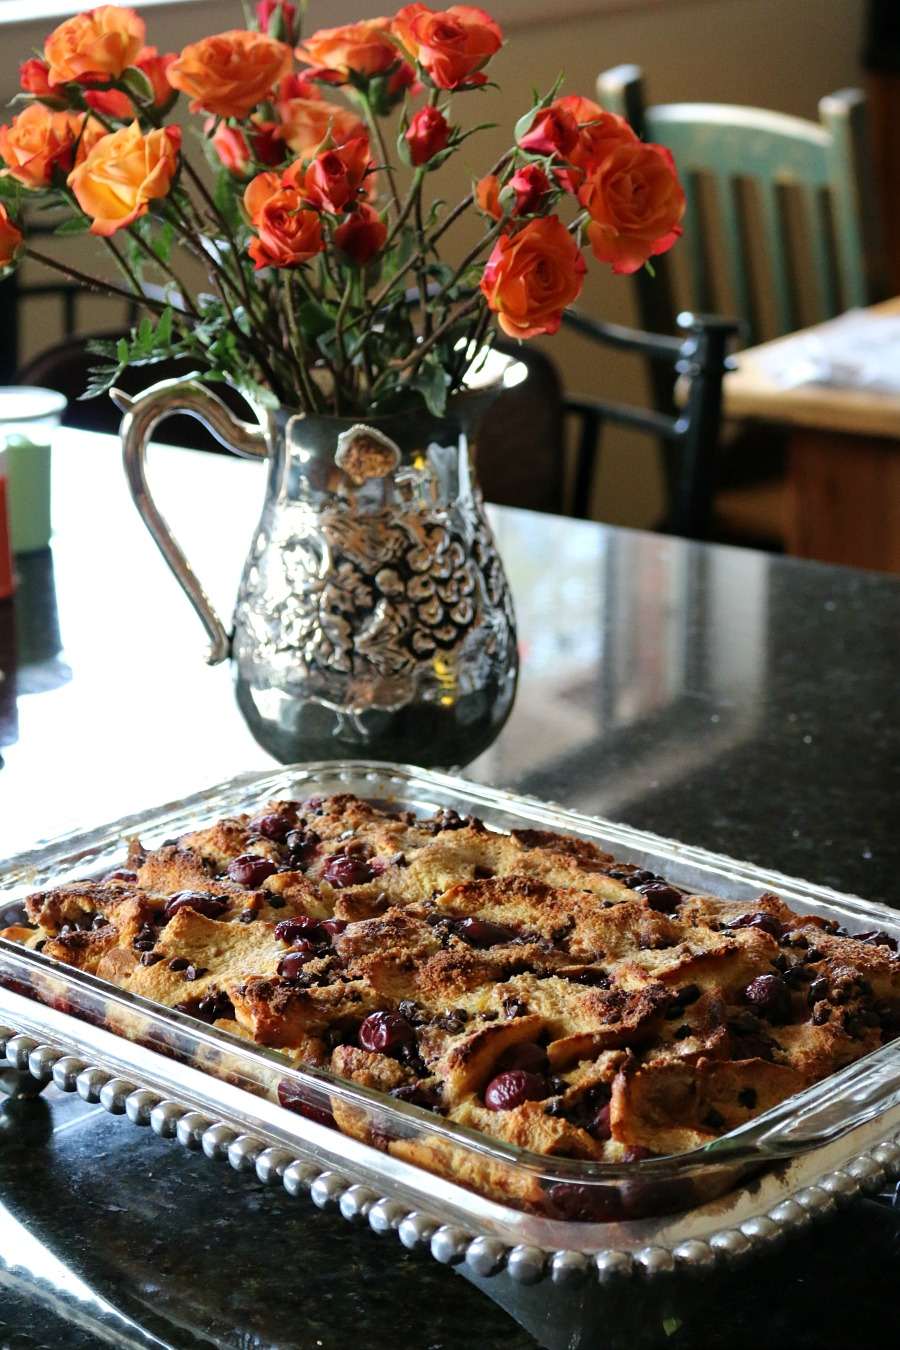 This would be the perfect brunch recipe. The perfect dessert, warm bread pudding with cherries and dark chocolate. Topped with whipped cream and hot fudge sauce. Decadent and delicious. || www.ceceliasgoodstuff.com